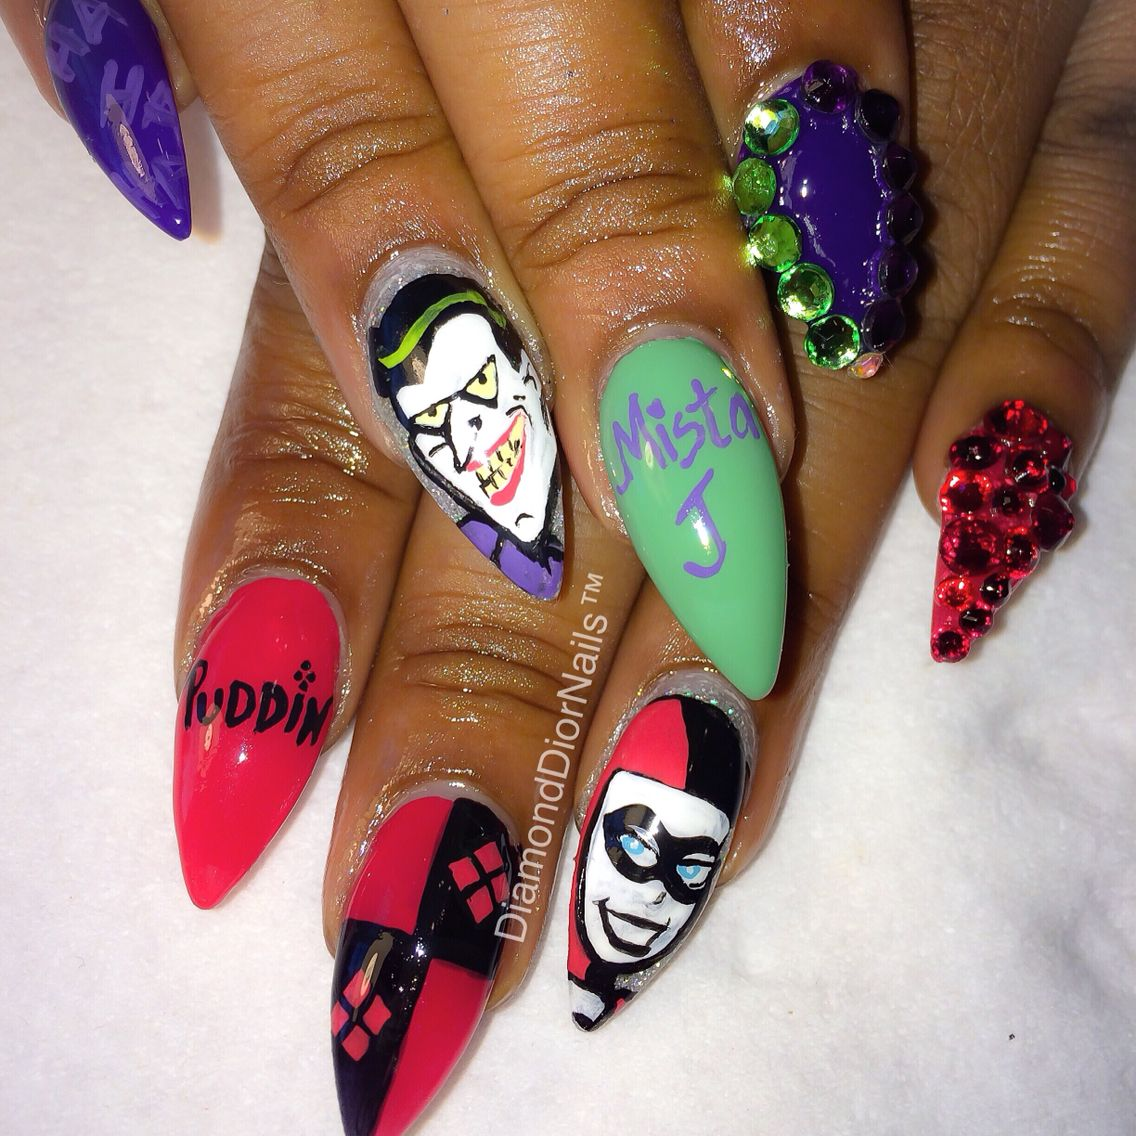 Joker and Harley Quinn nails by me | Nails I love! | Pinterest ...